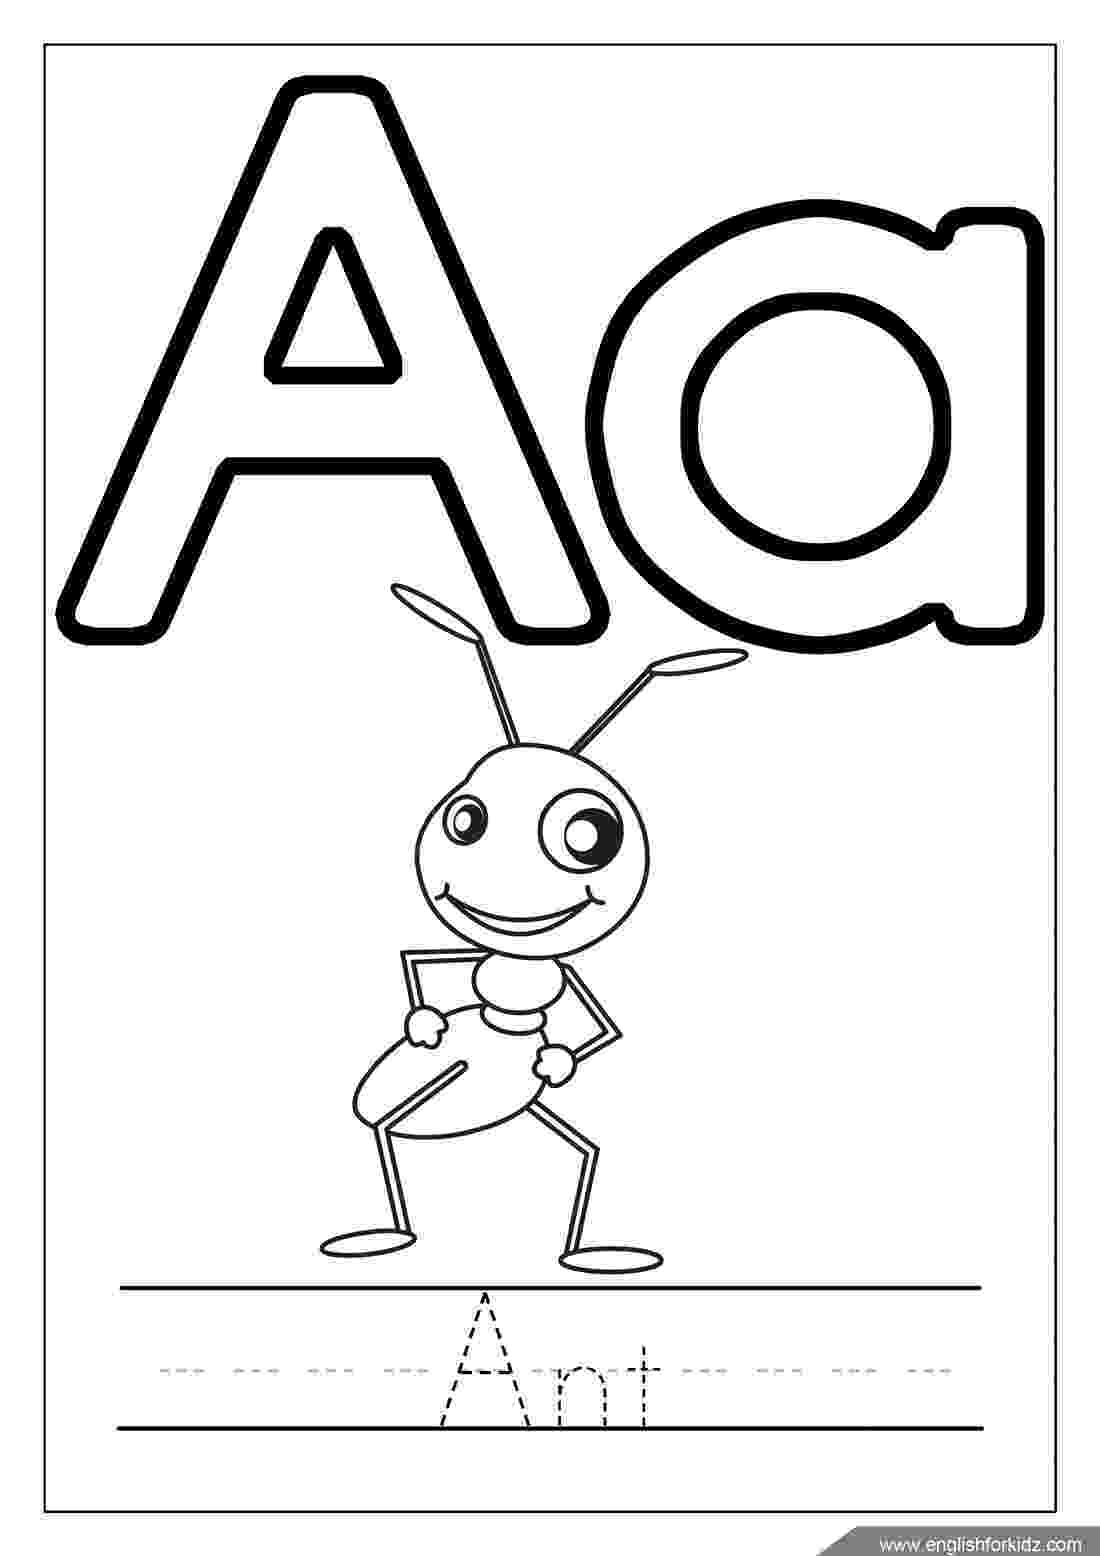 coloring pages of letters free printable alphabet coloring pages for kids best pages of coloring letters